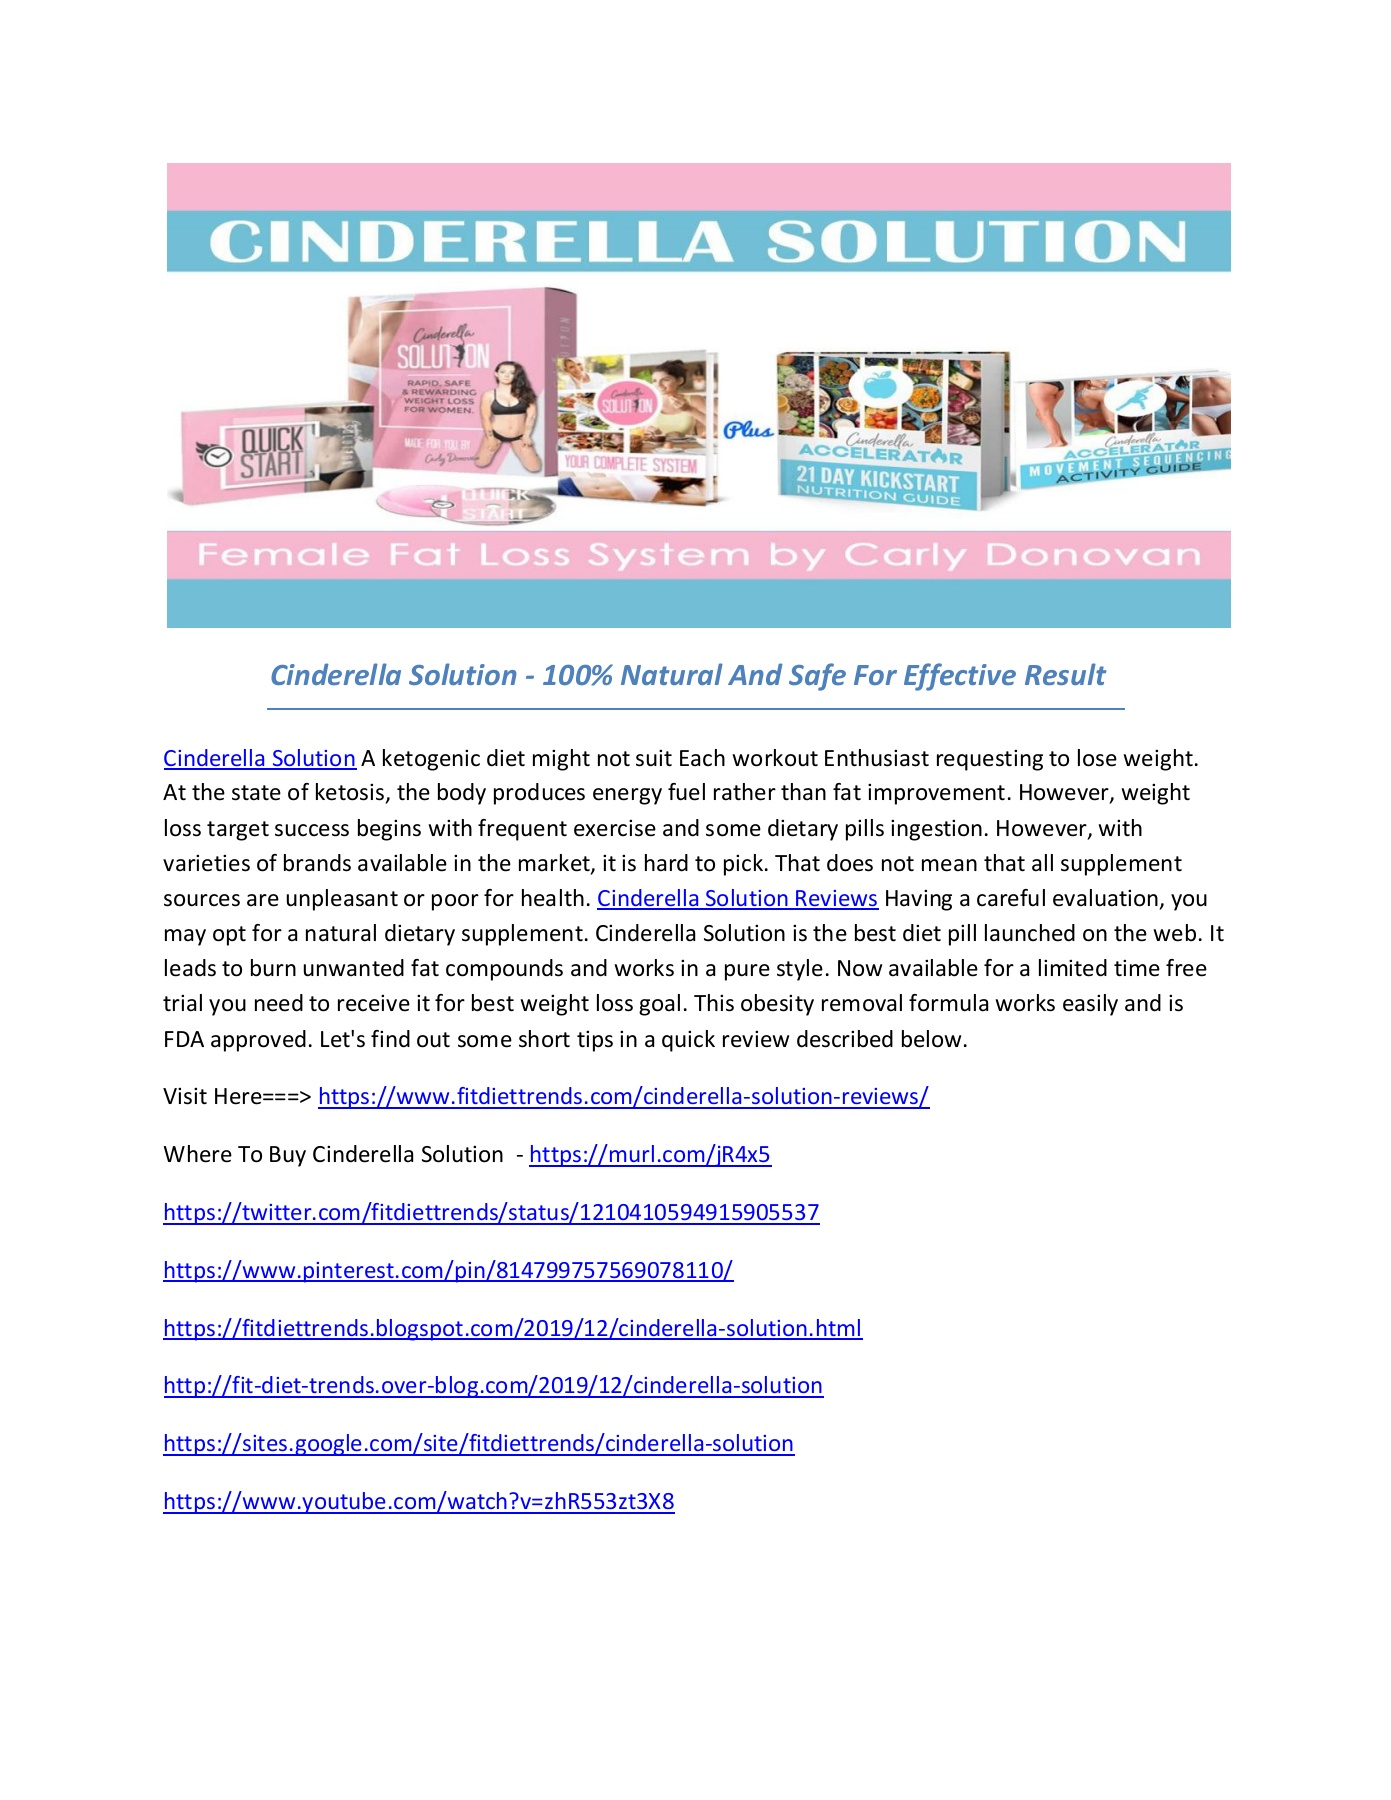 Military Discount Diet  Cinderella Solution